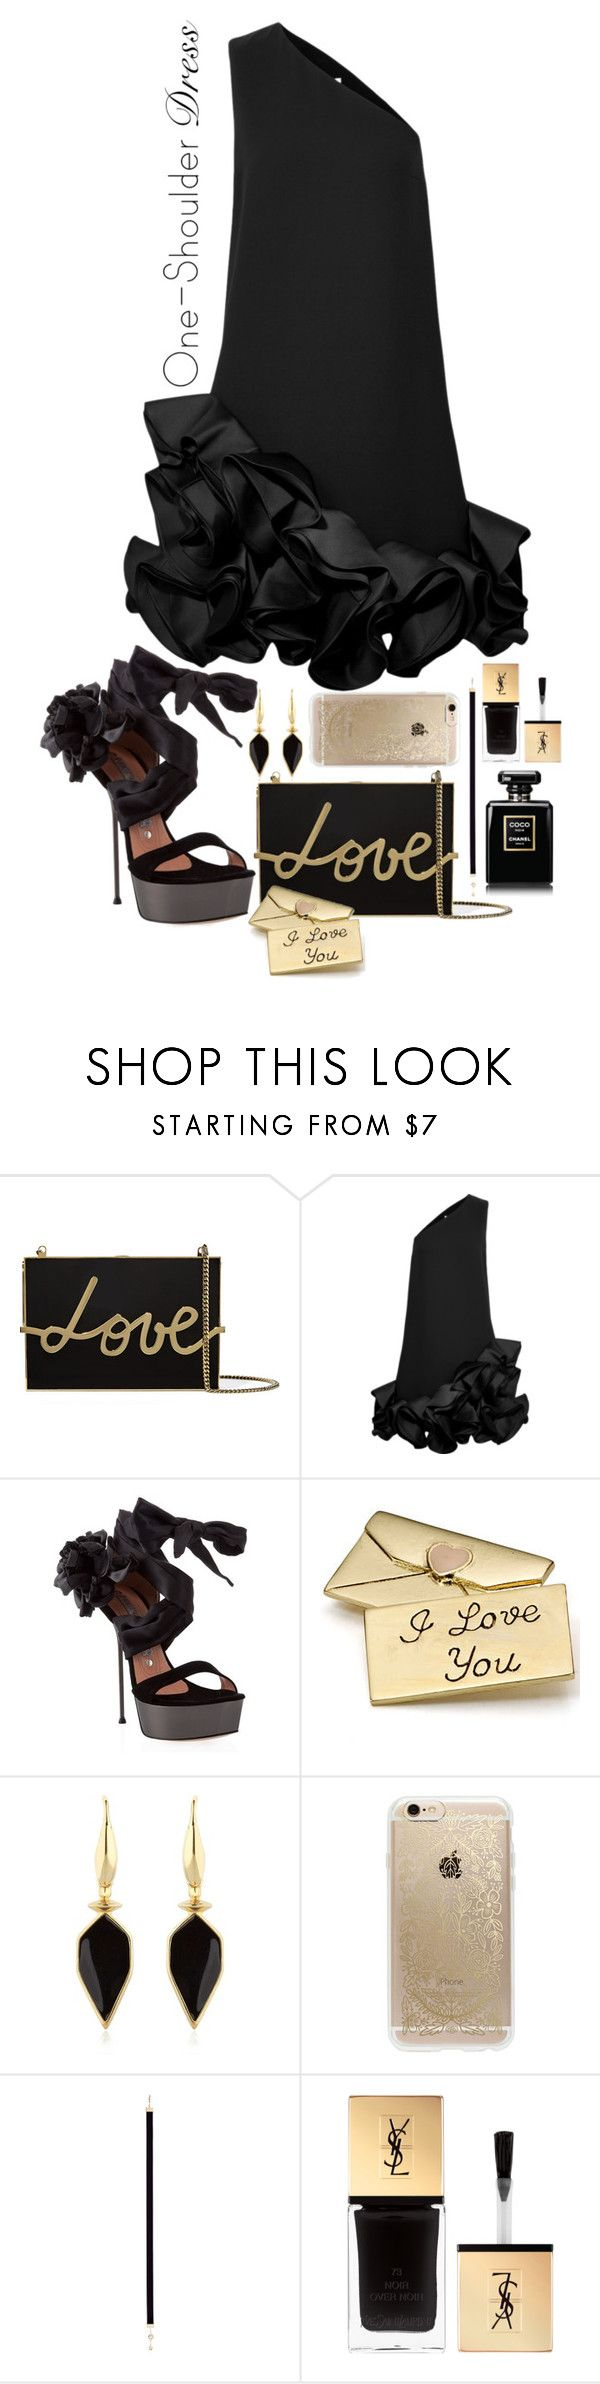 """Party Style: One-Shoulder Dress"" by mrsjillc ❤ liked on Polyvore featuring Lanvin, Victoria, Victoria Beckham, Gianmarco Lorenzi, Monsoon, Isabel Marant, Rifle Paper Co, Nouvel Heritage, Yves Saint Laurent and dress"